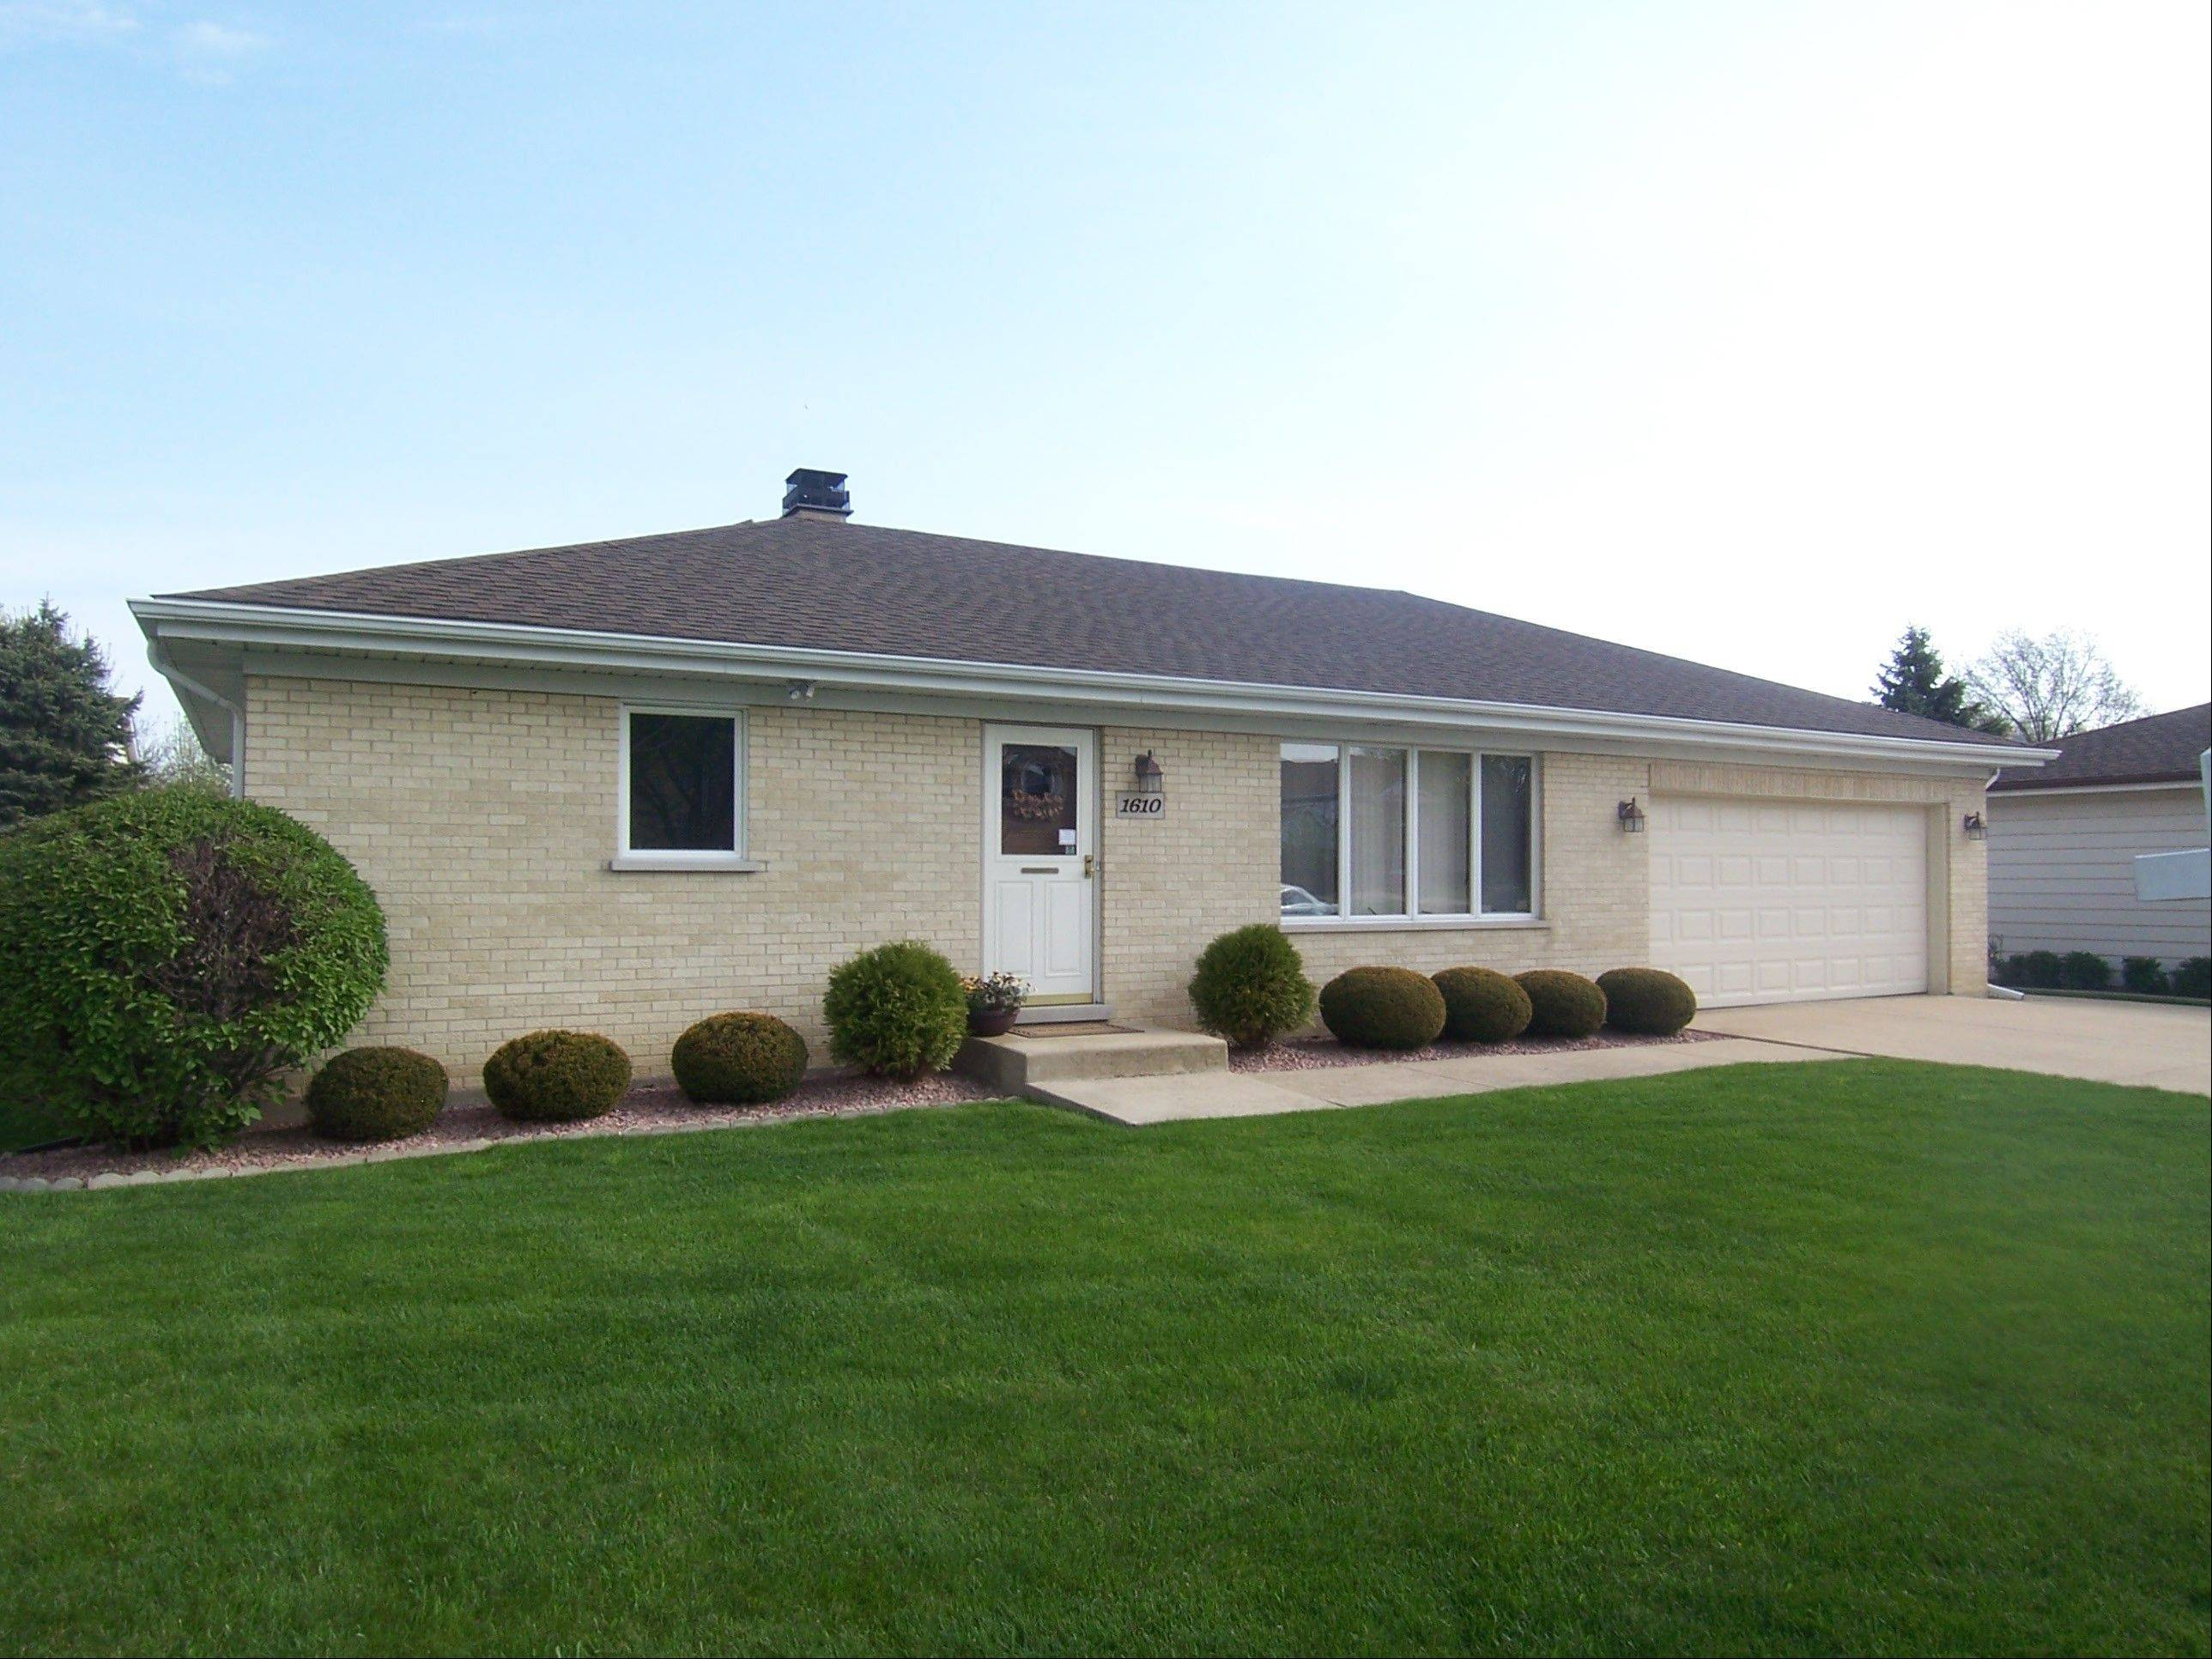 This pristine, Arlington Heights ranch is on a cul-de-sac and close to shopping and dining.